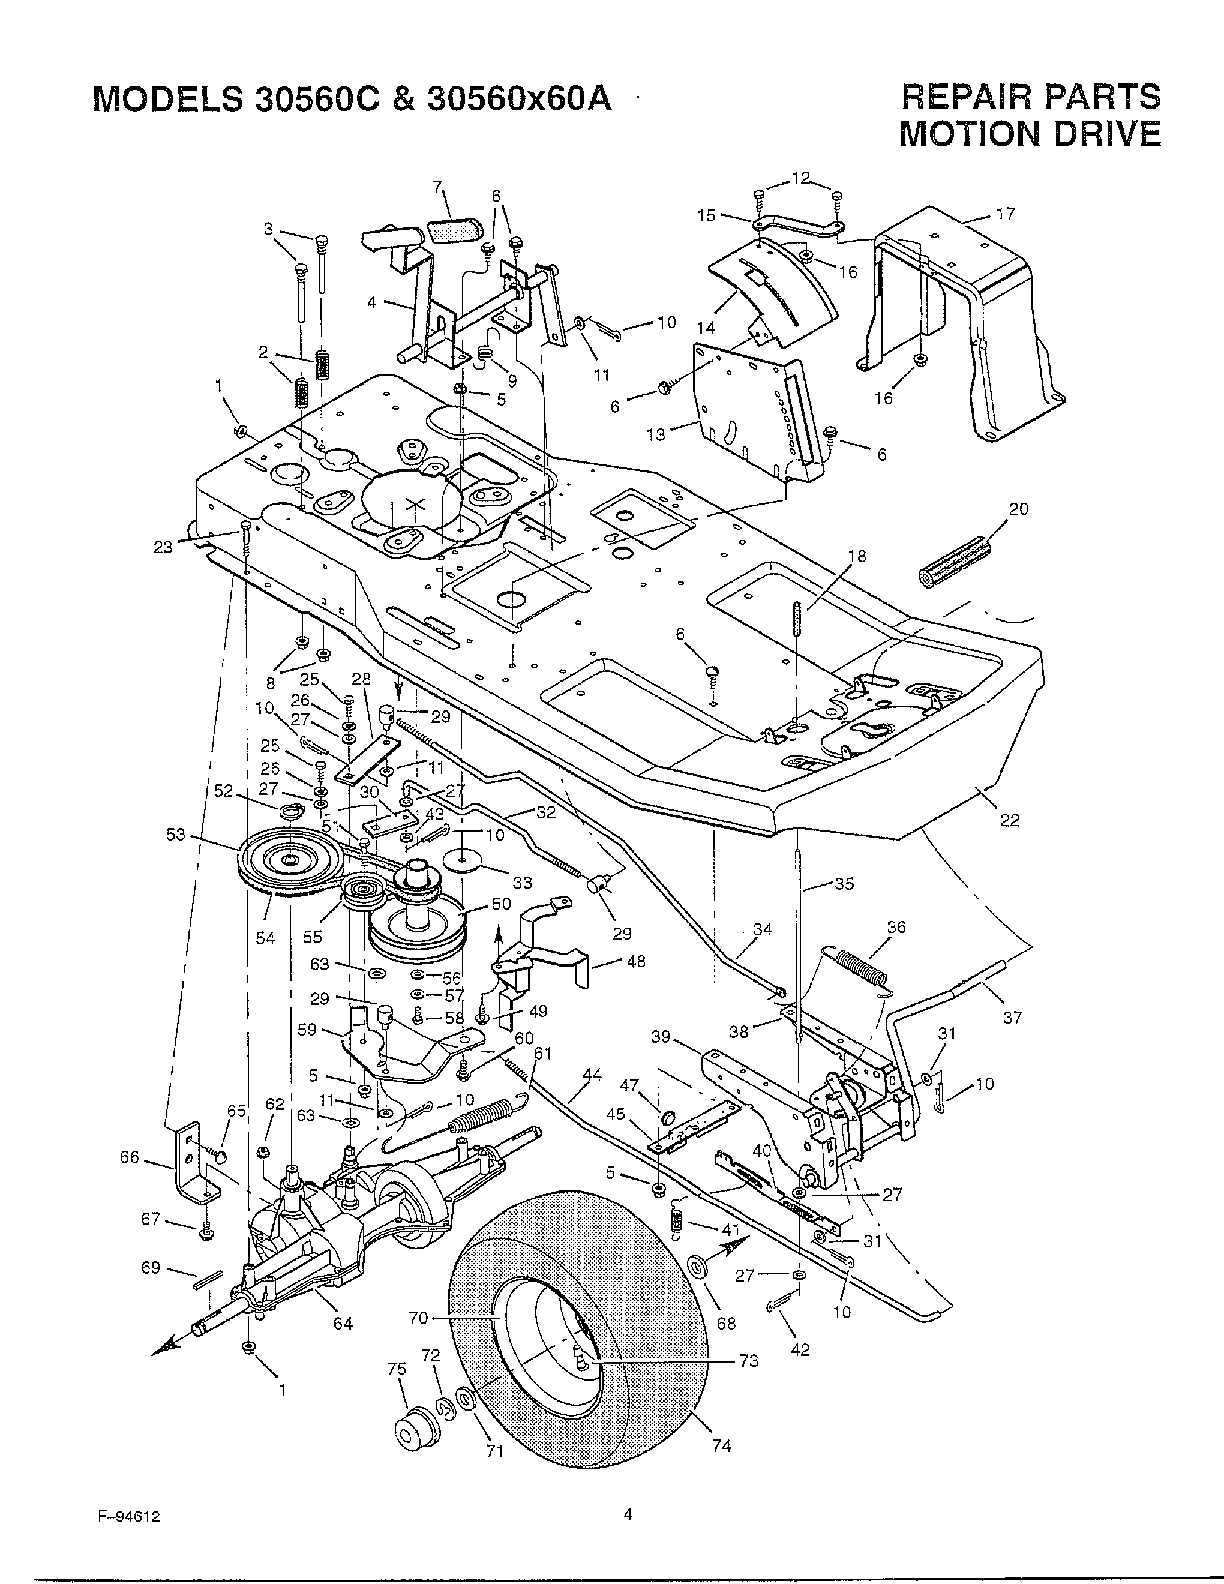 MOTION DRIVE Diagram & Parts List for Model 30560x60a